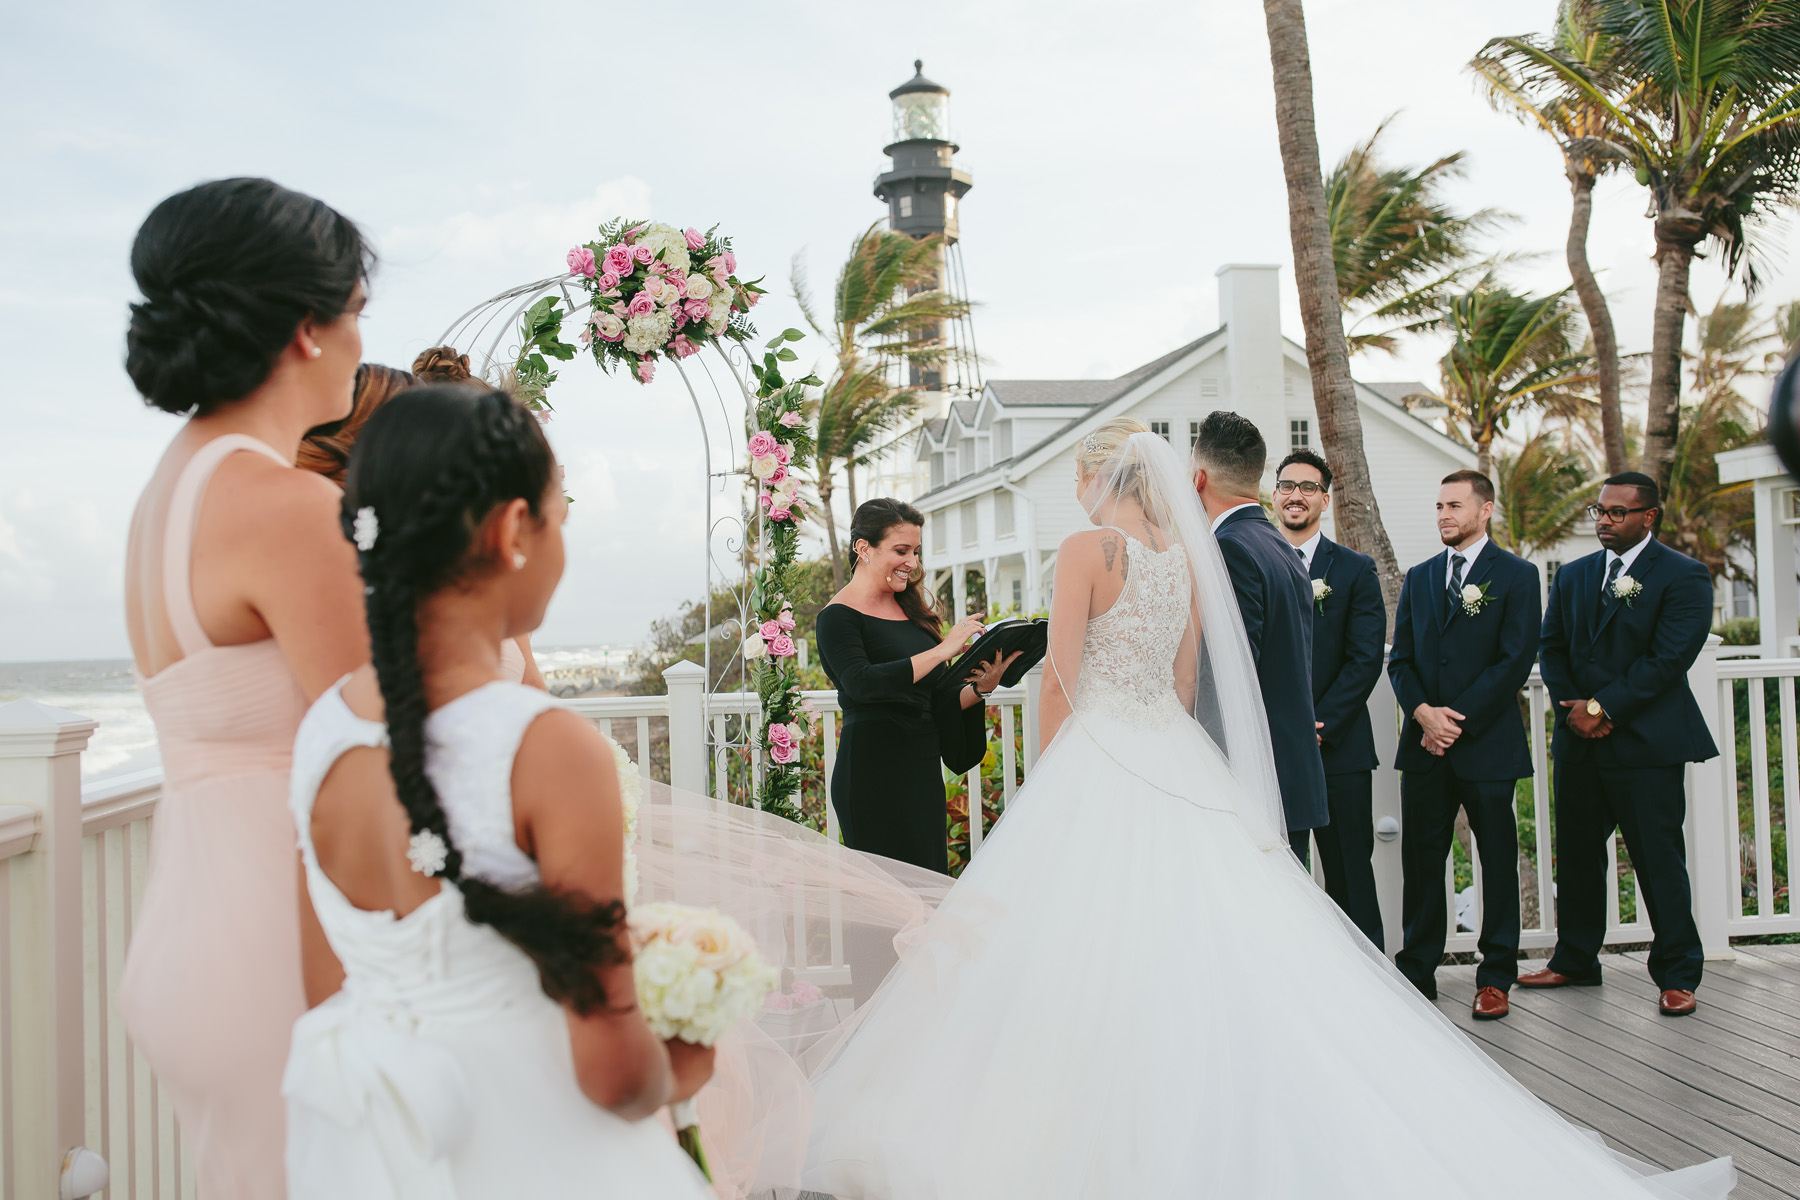 ceremony-lighthouse-beach-tiny-house-photo.jpg